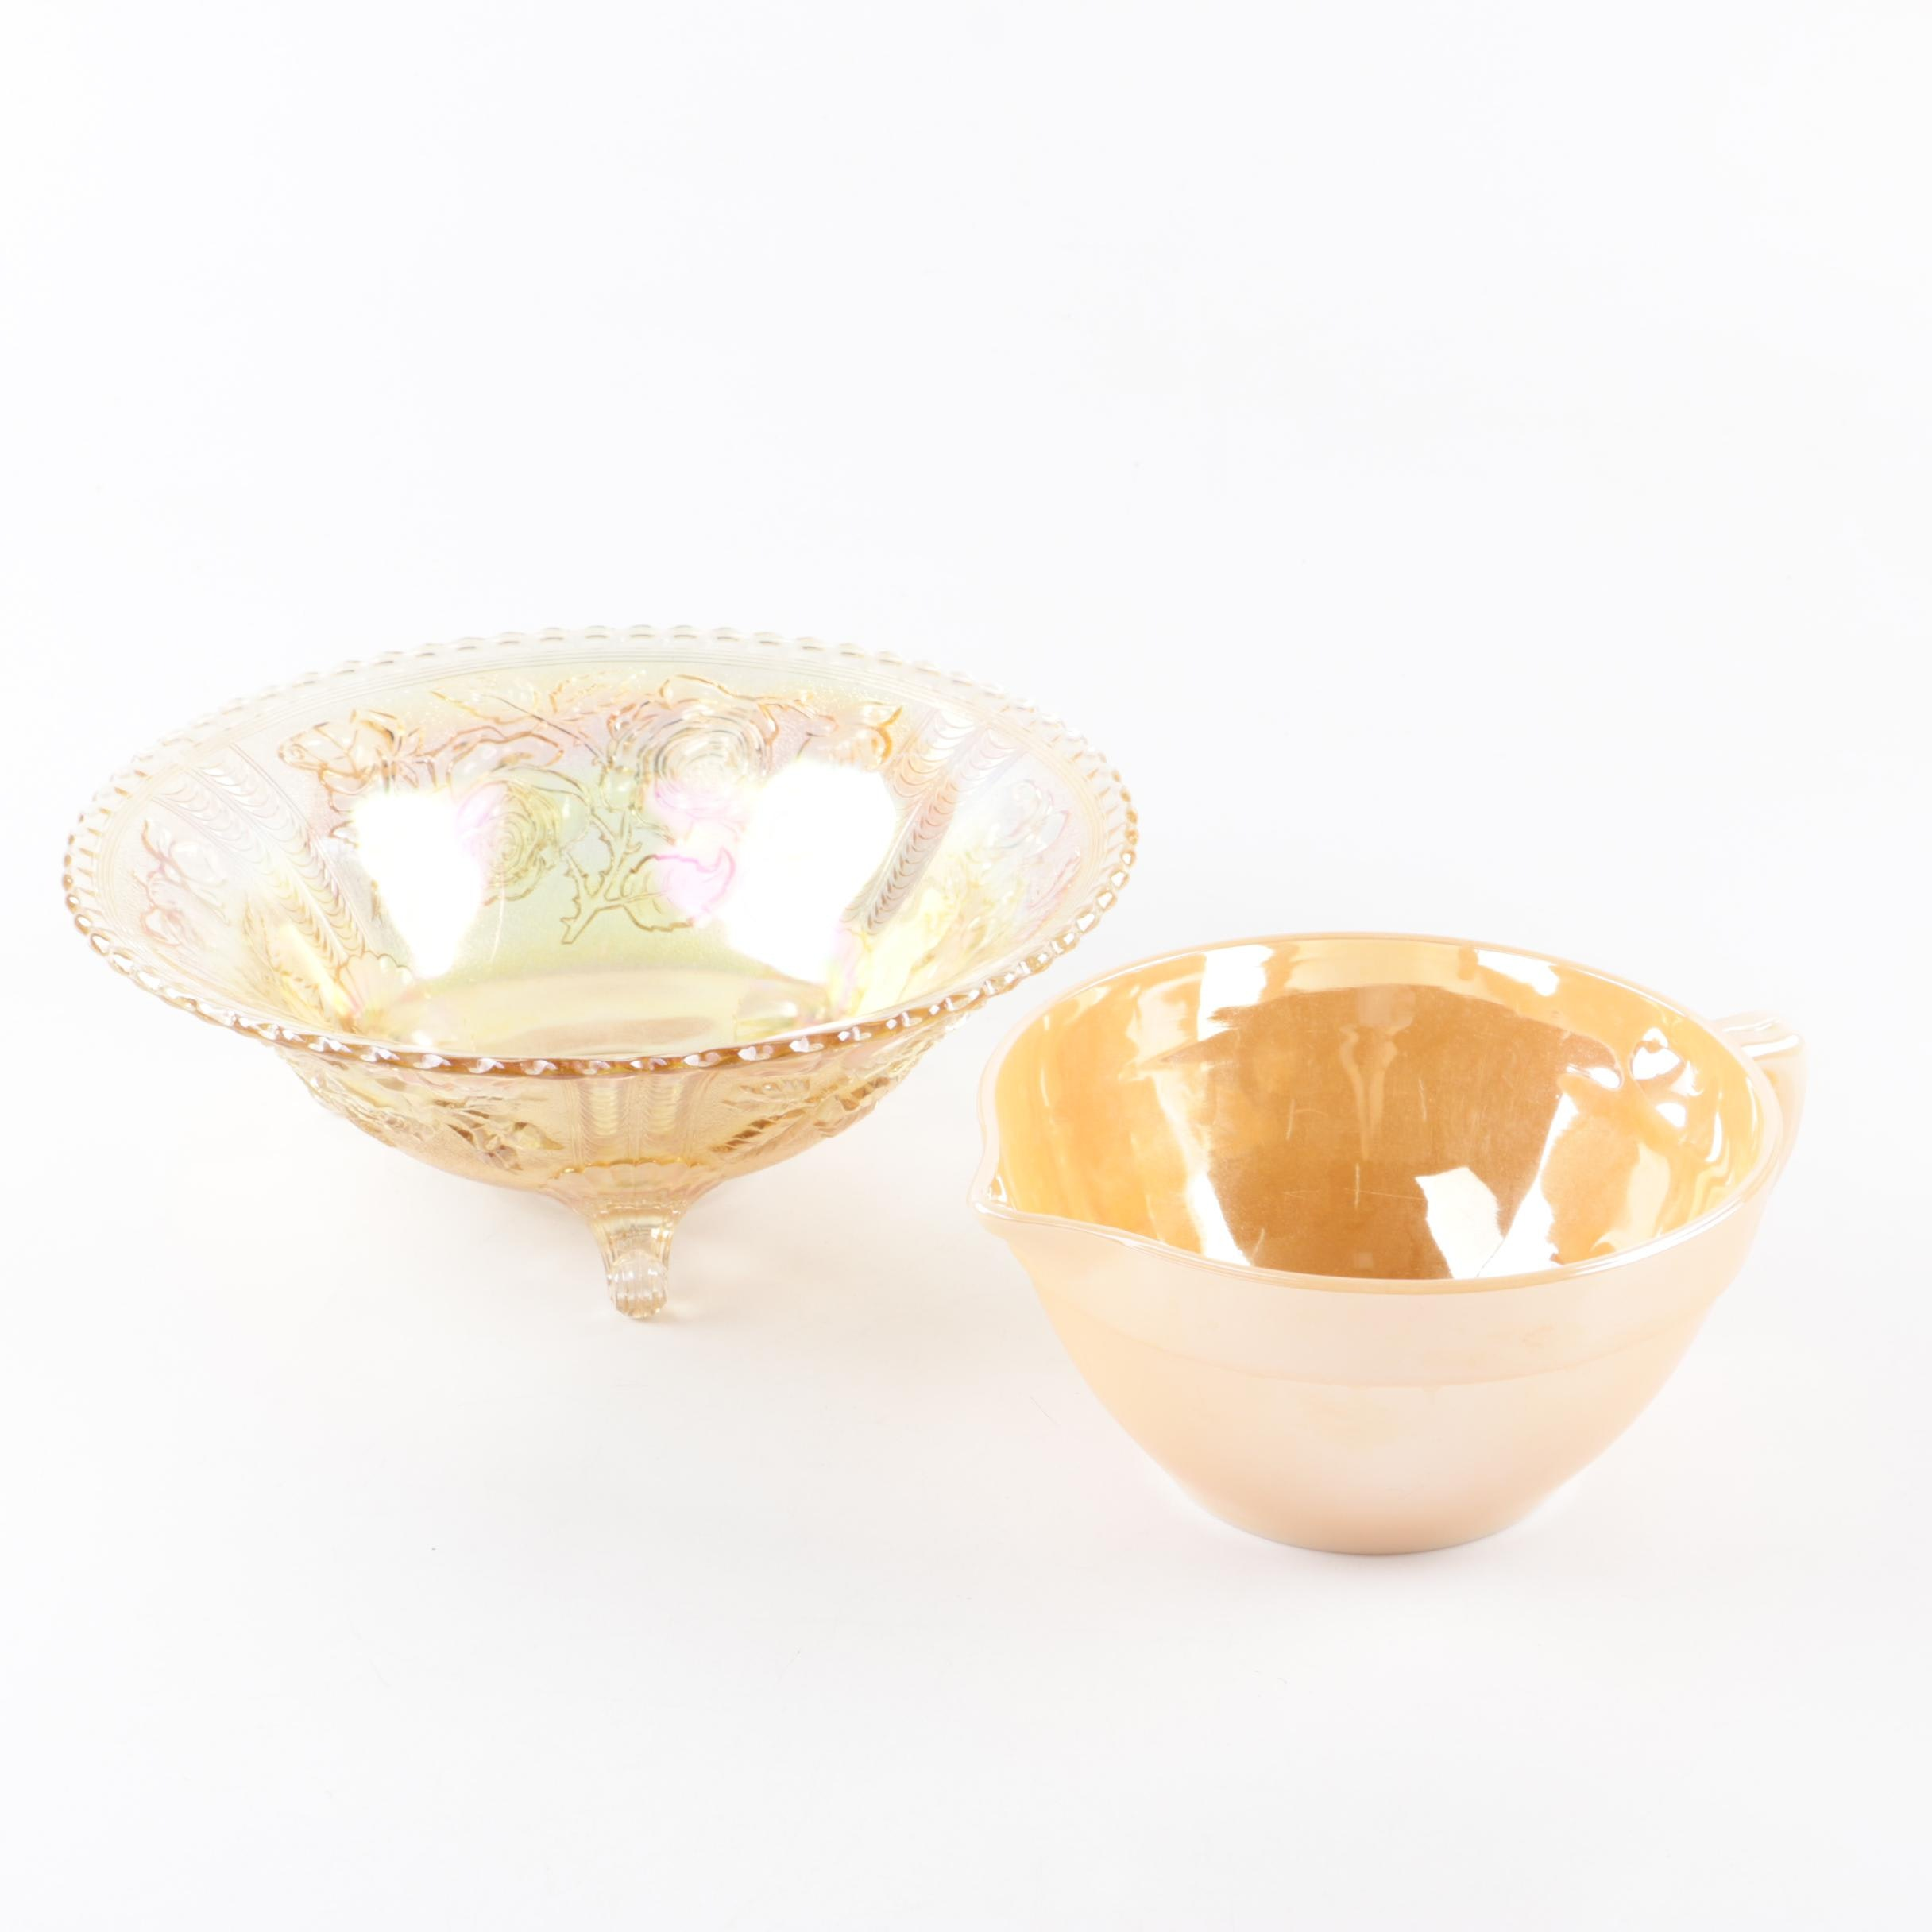 Fire-King Peach Luster Mixing Bowl with Footed Carnival Glass Bowl